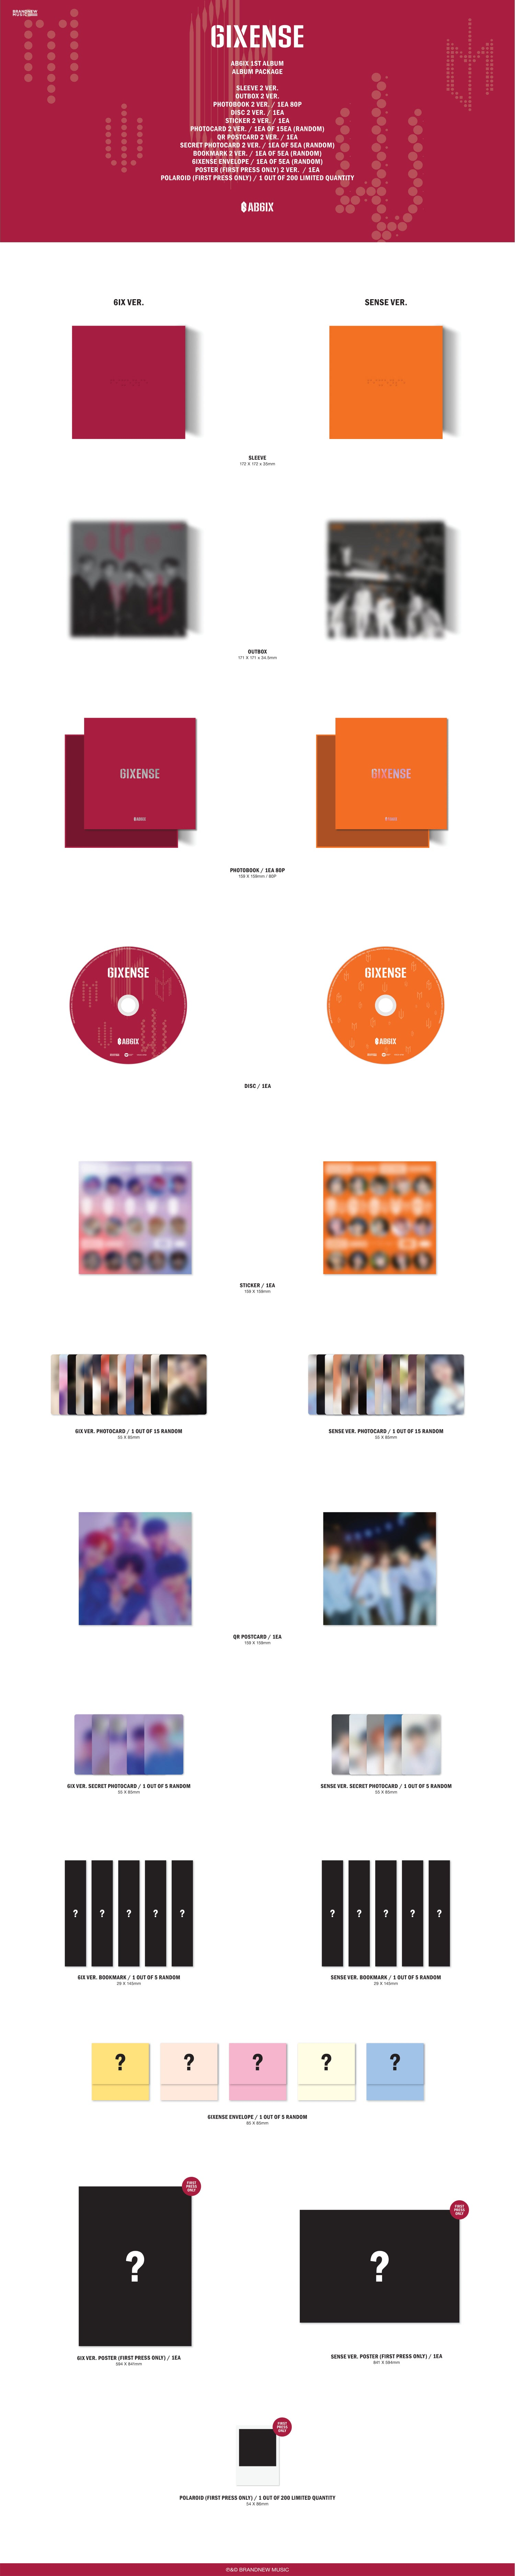 AB6IX_6IXSENSE_SOKOLLAB New Kpop Album Music CD